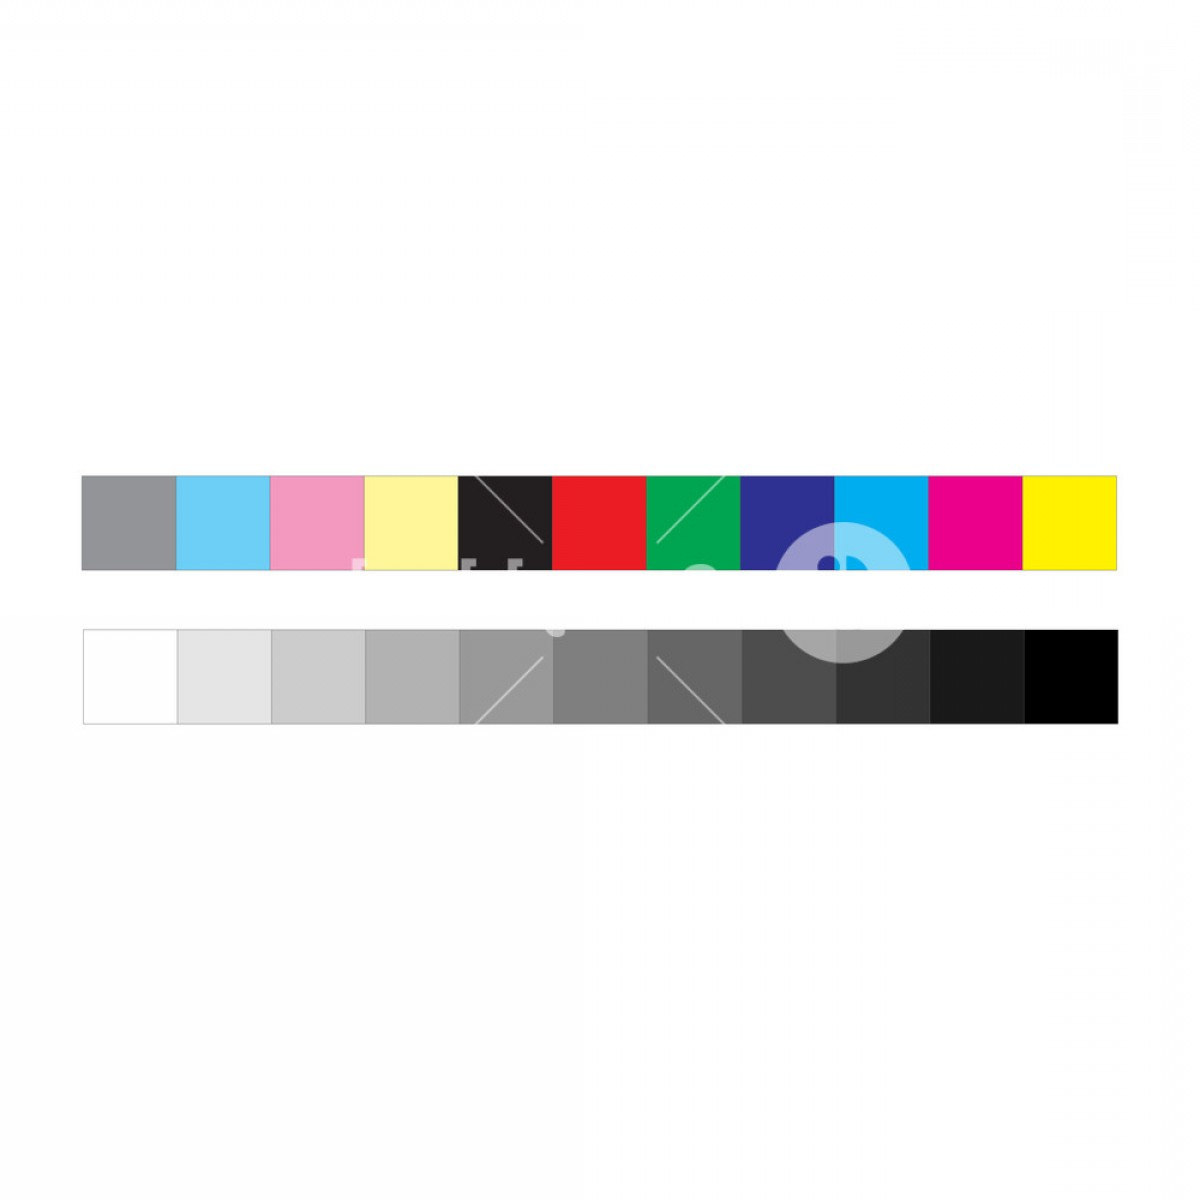 Color CMYK Chart Vector Free: Cmyk Press Marks Color And Greyscale Bar Vector Illustration Isolated On White Background Smlqualenjpufhi